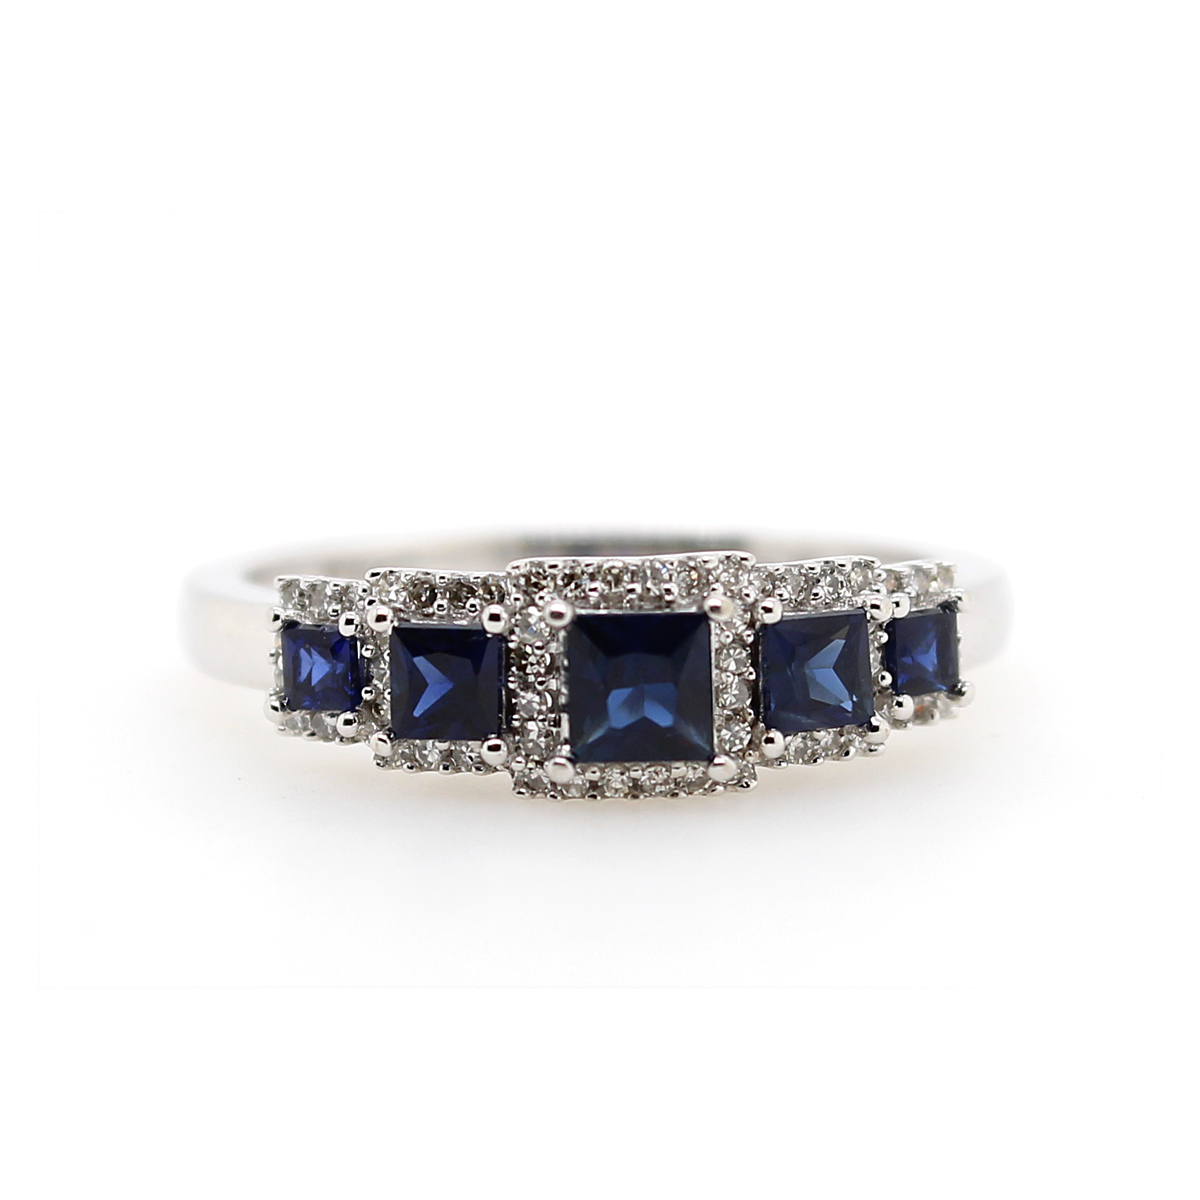 Vintage 14 Karat White Gold Princess Cut Blue Sapphire and Diamond Ring